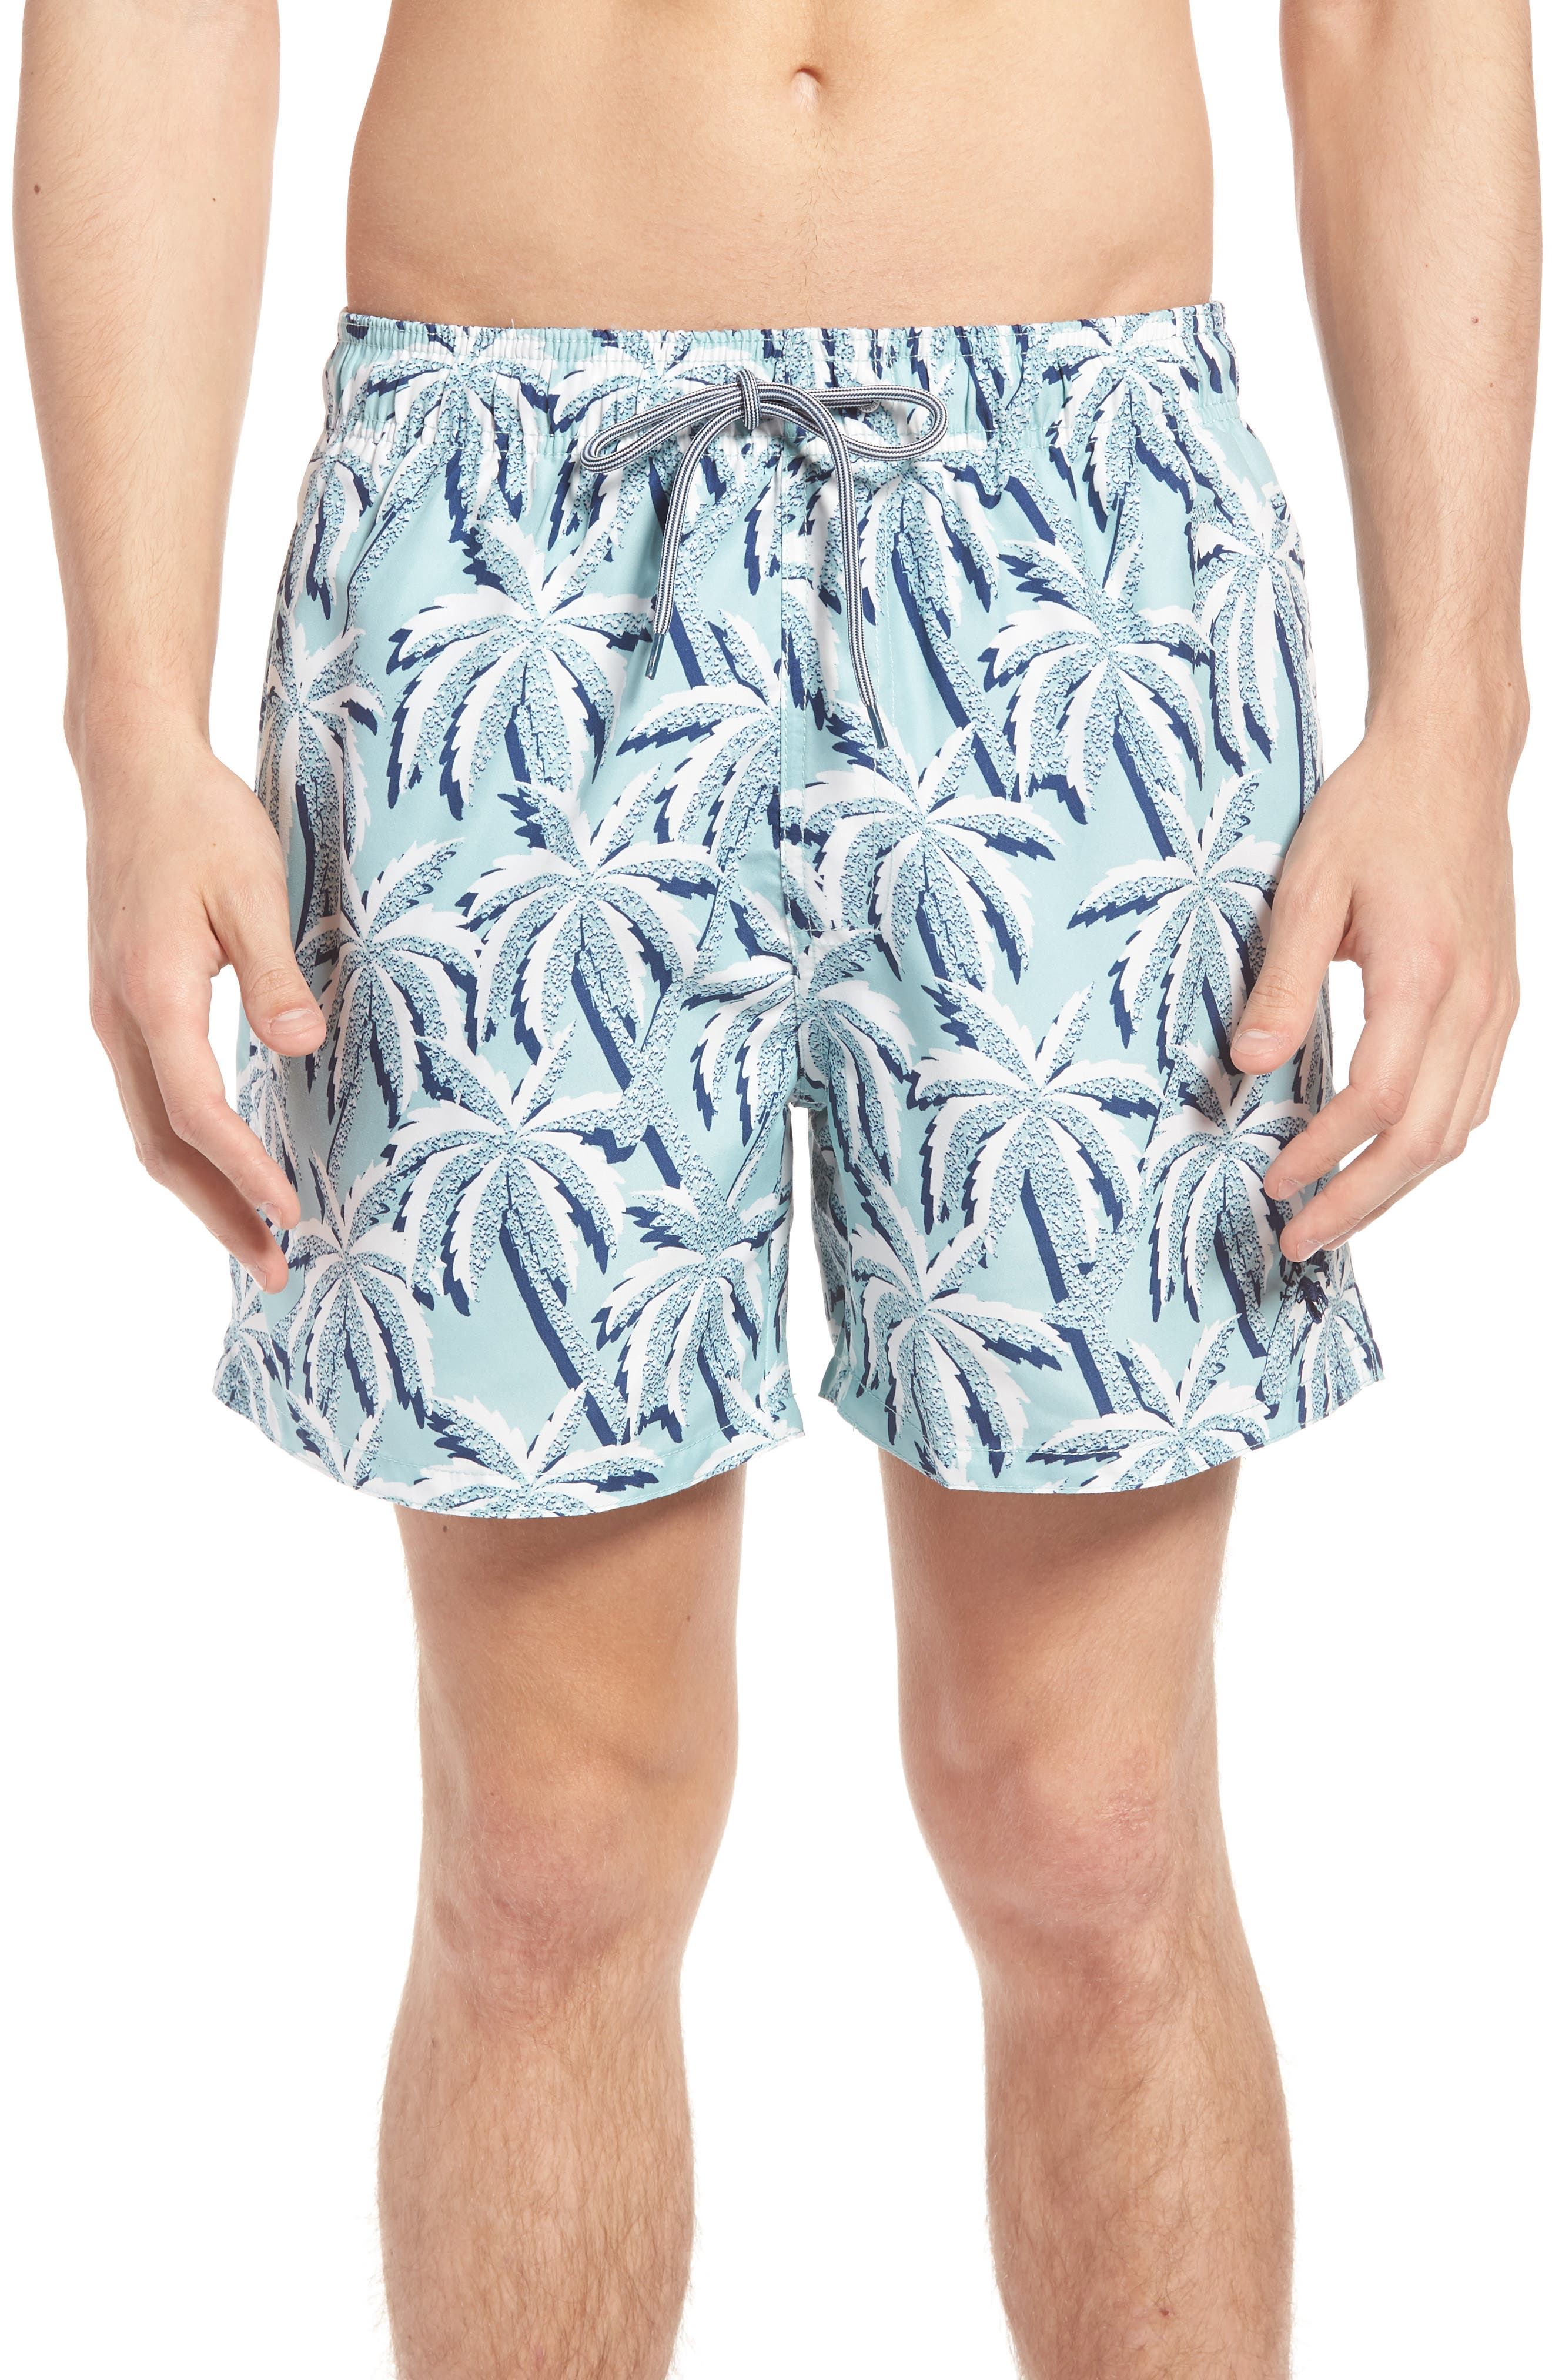 Hoppah Palm Print Swim Shorts,                         Main,                         color, 330